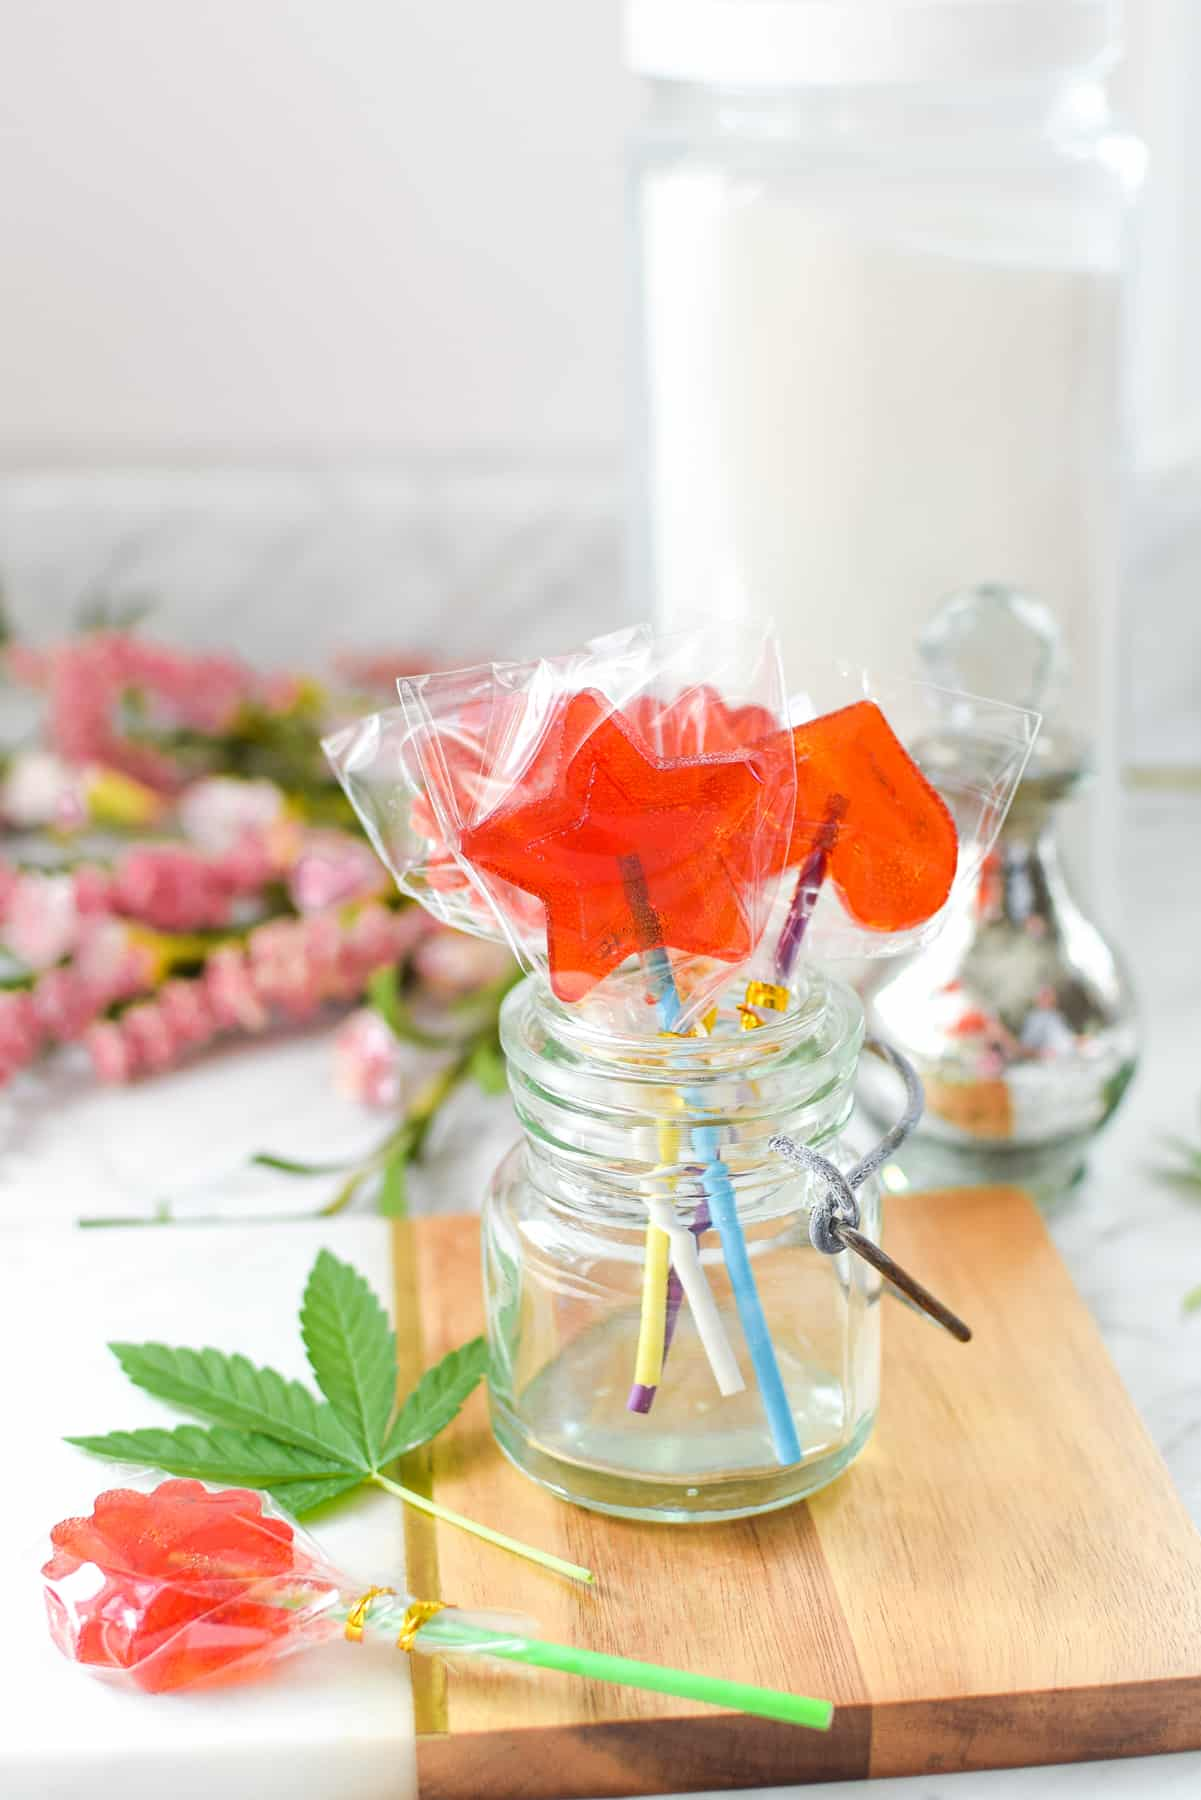 A wooden cutting board with a small mason jar full of red cannabis lollipops